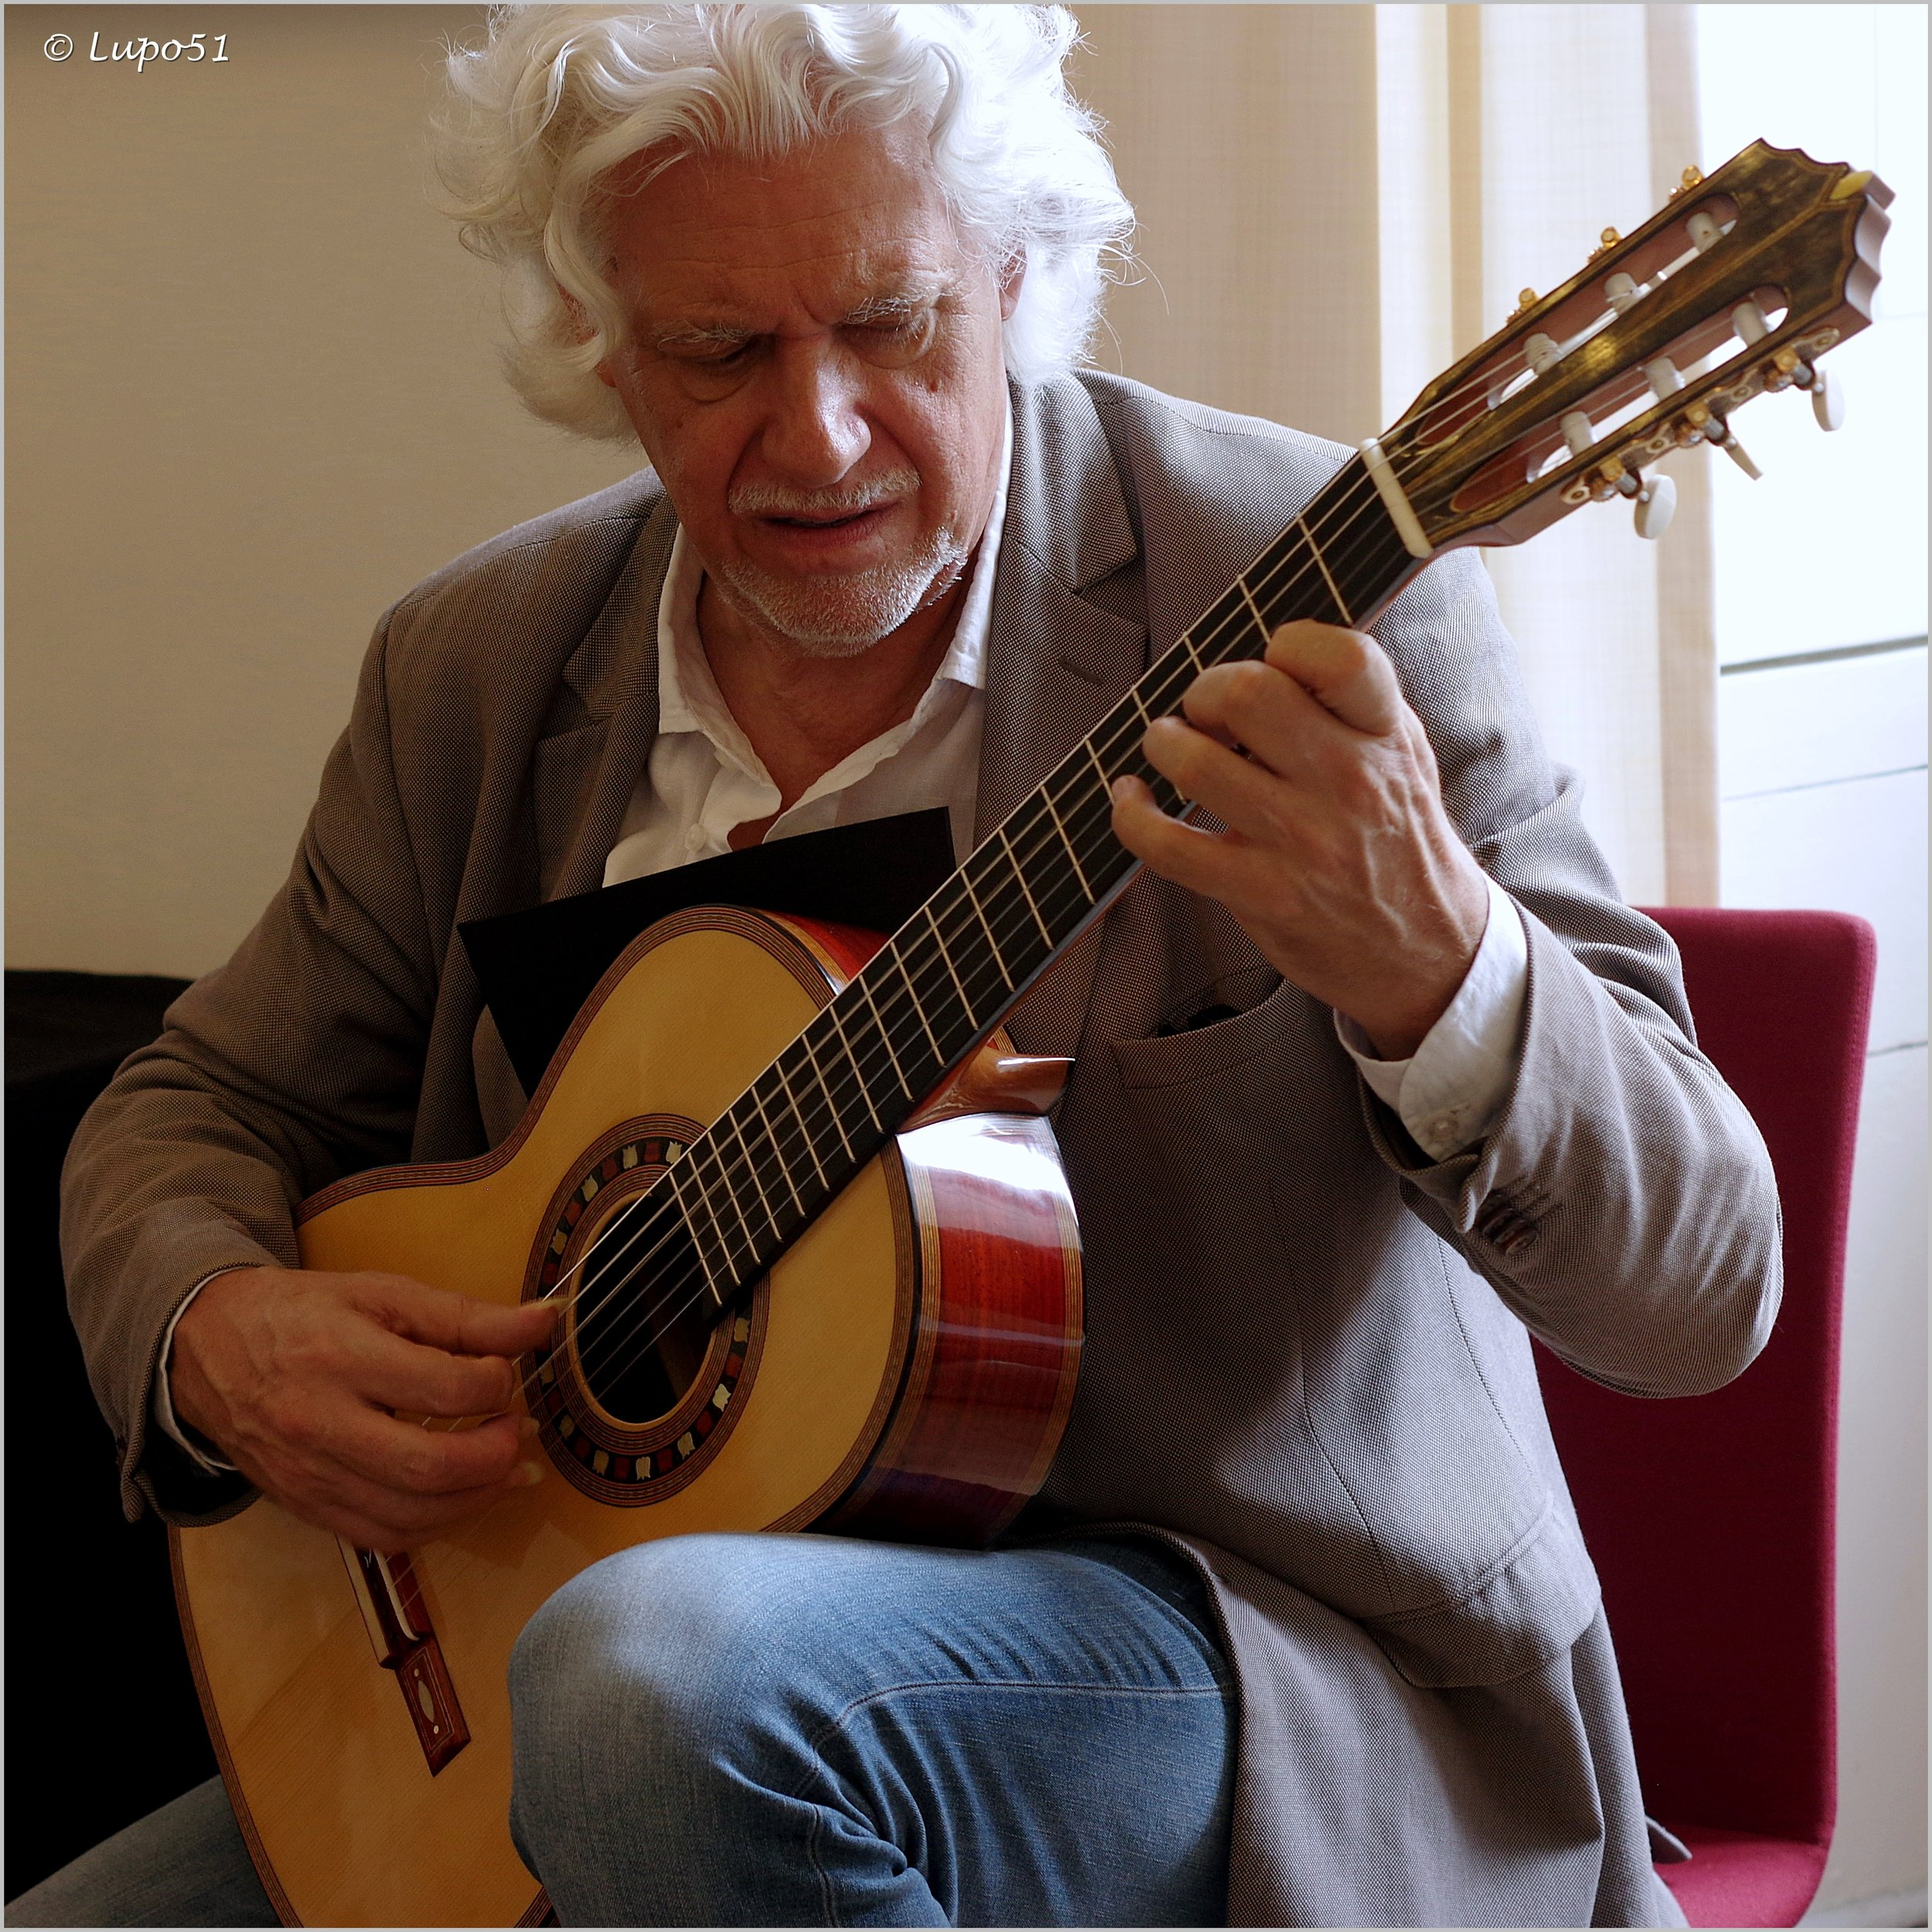 Maestro Hubert Käppel meets a Den Toom Luthier guitar for the first time!